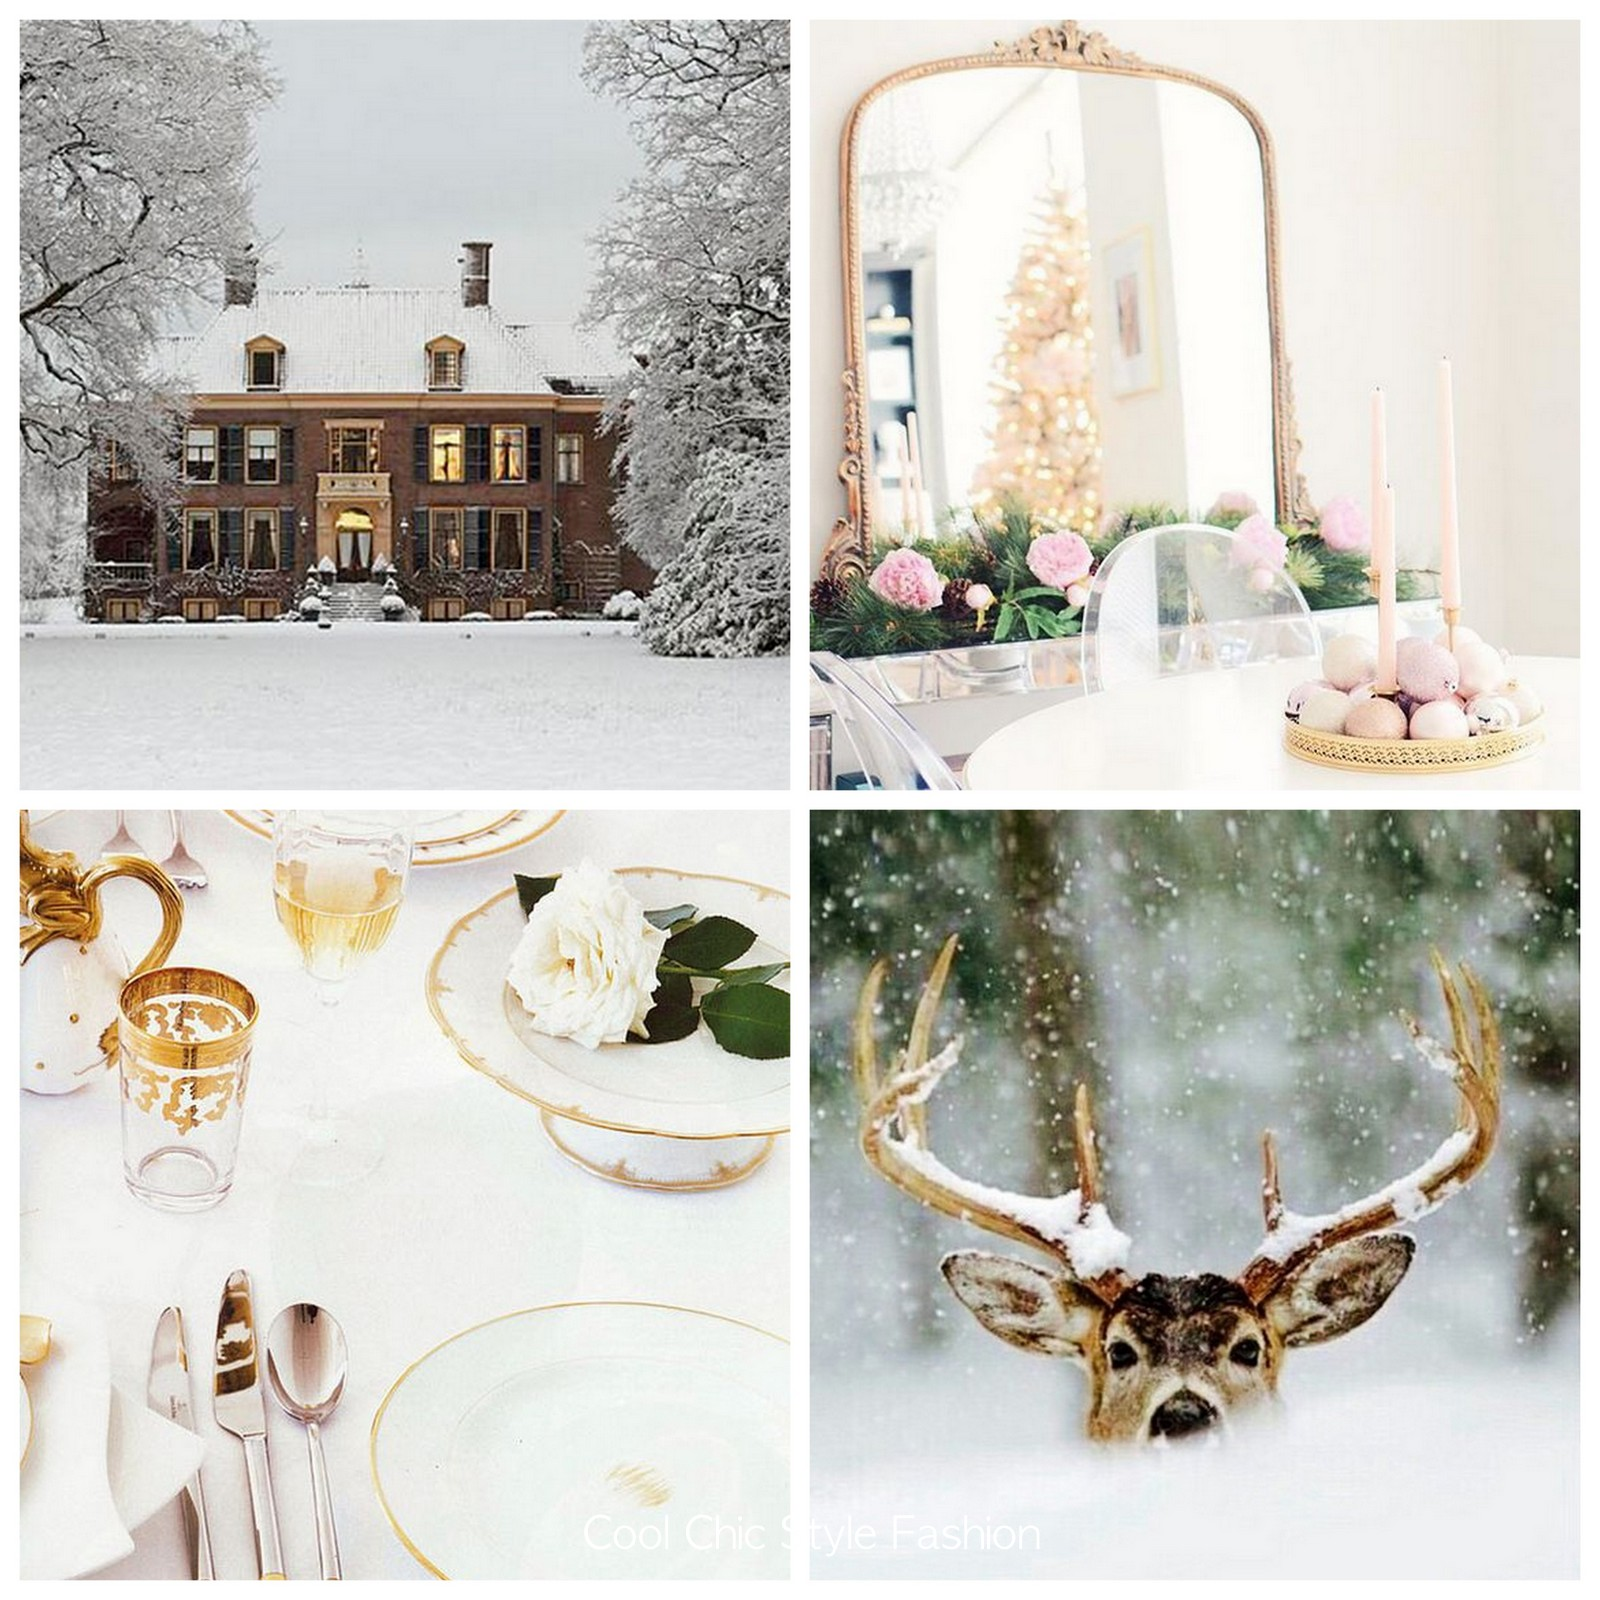 Happy Holidays Inspiration: Happy Weekend Images Of Holiday Inspiration To Celebrate